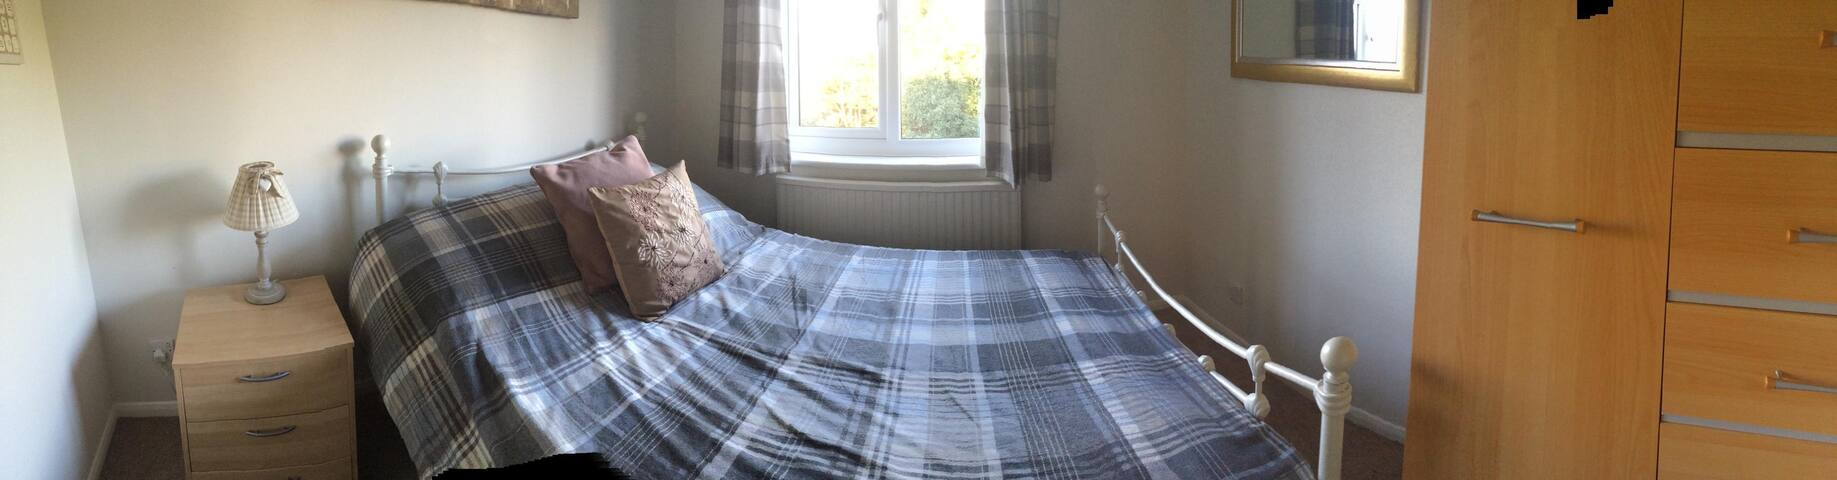 Immaculate double room in a family home, Ascot